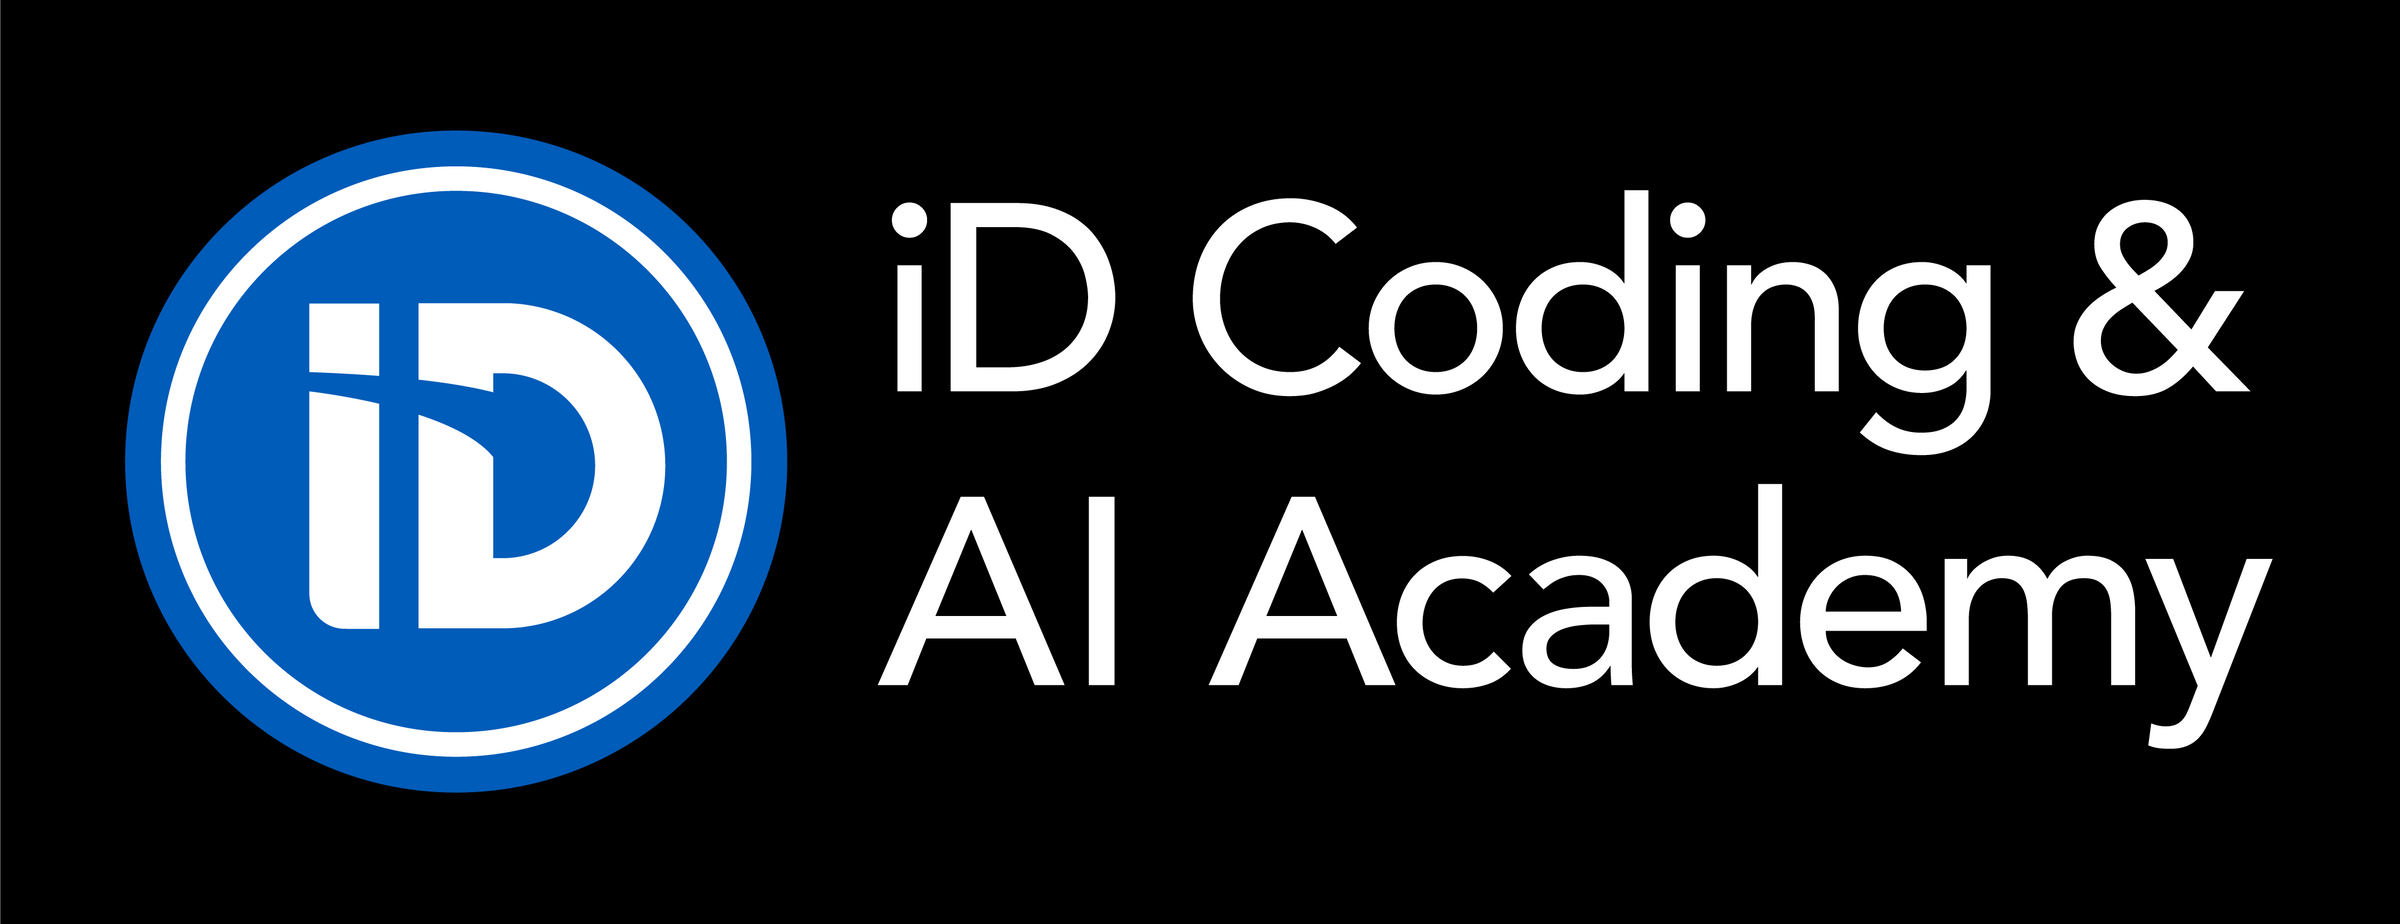 iD Coding & AI Academy for Teens - Held at Ohio State University